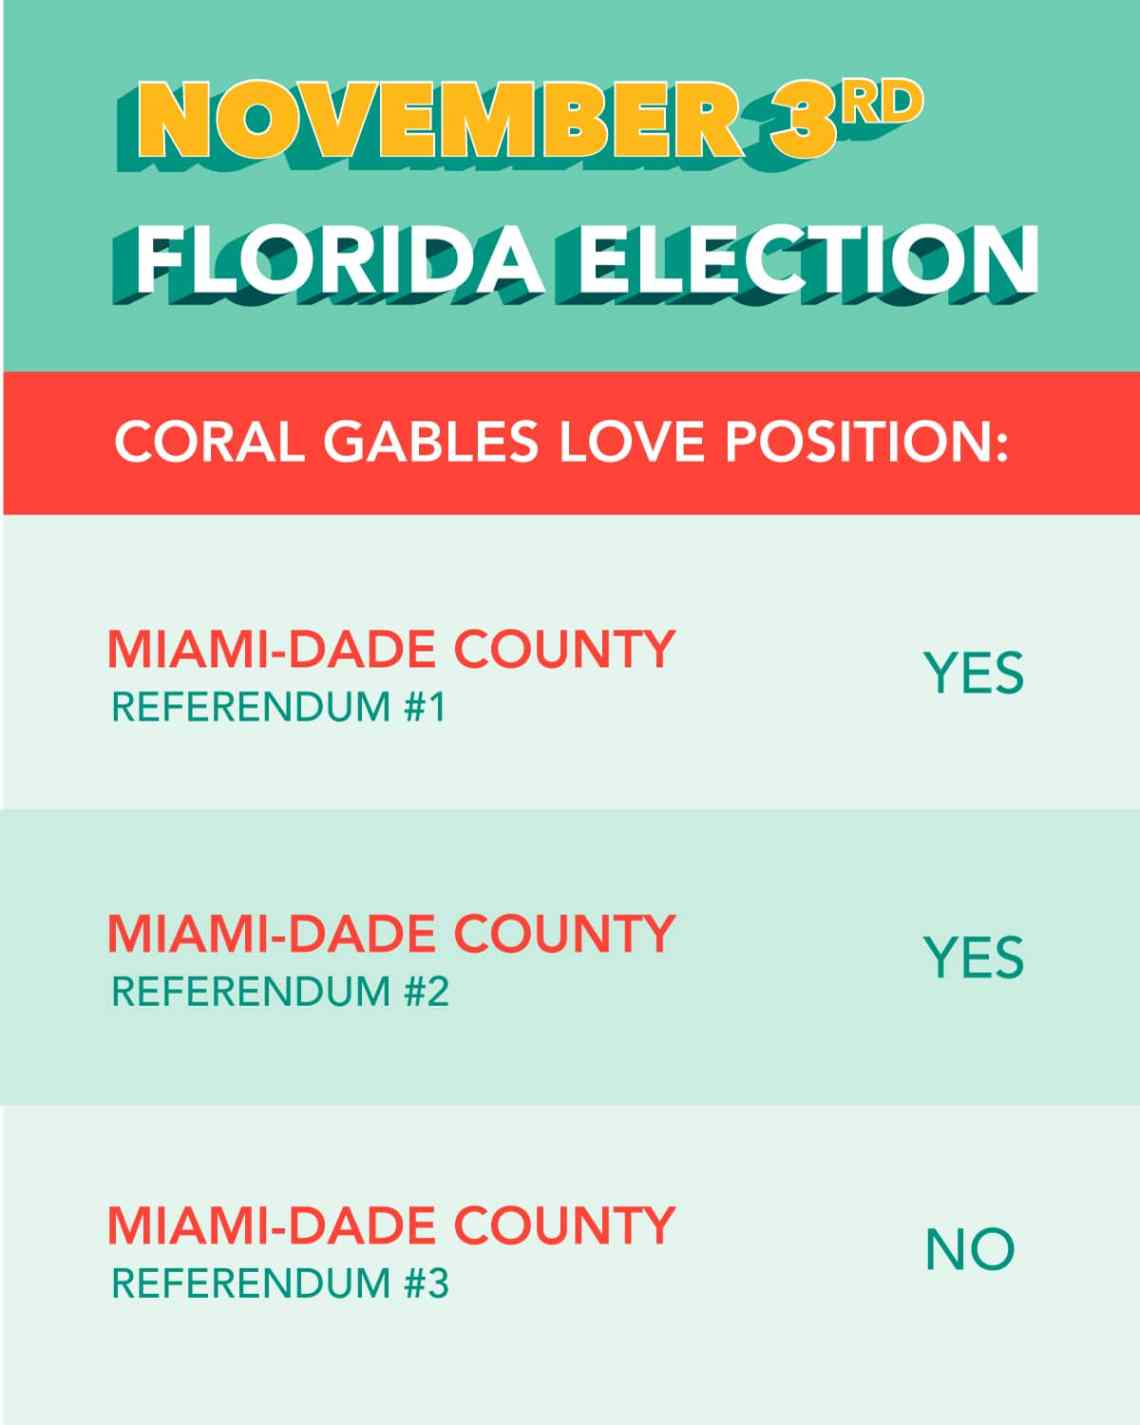 Florida Miami-Dade County Referendums in General Election 2020 Ballot